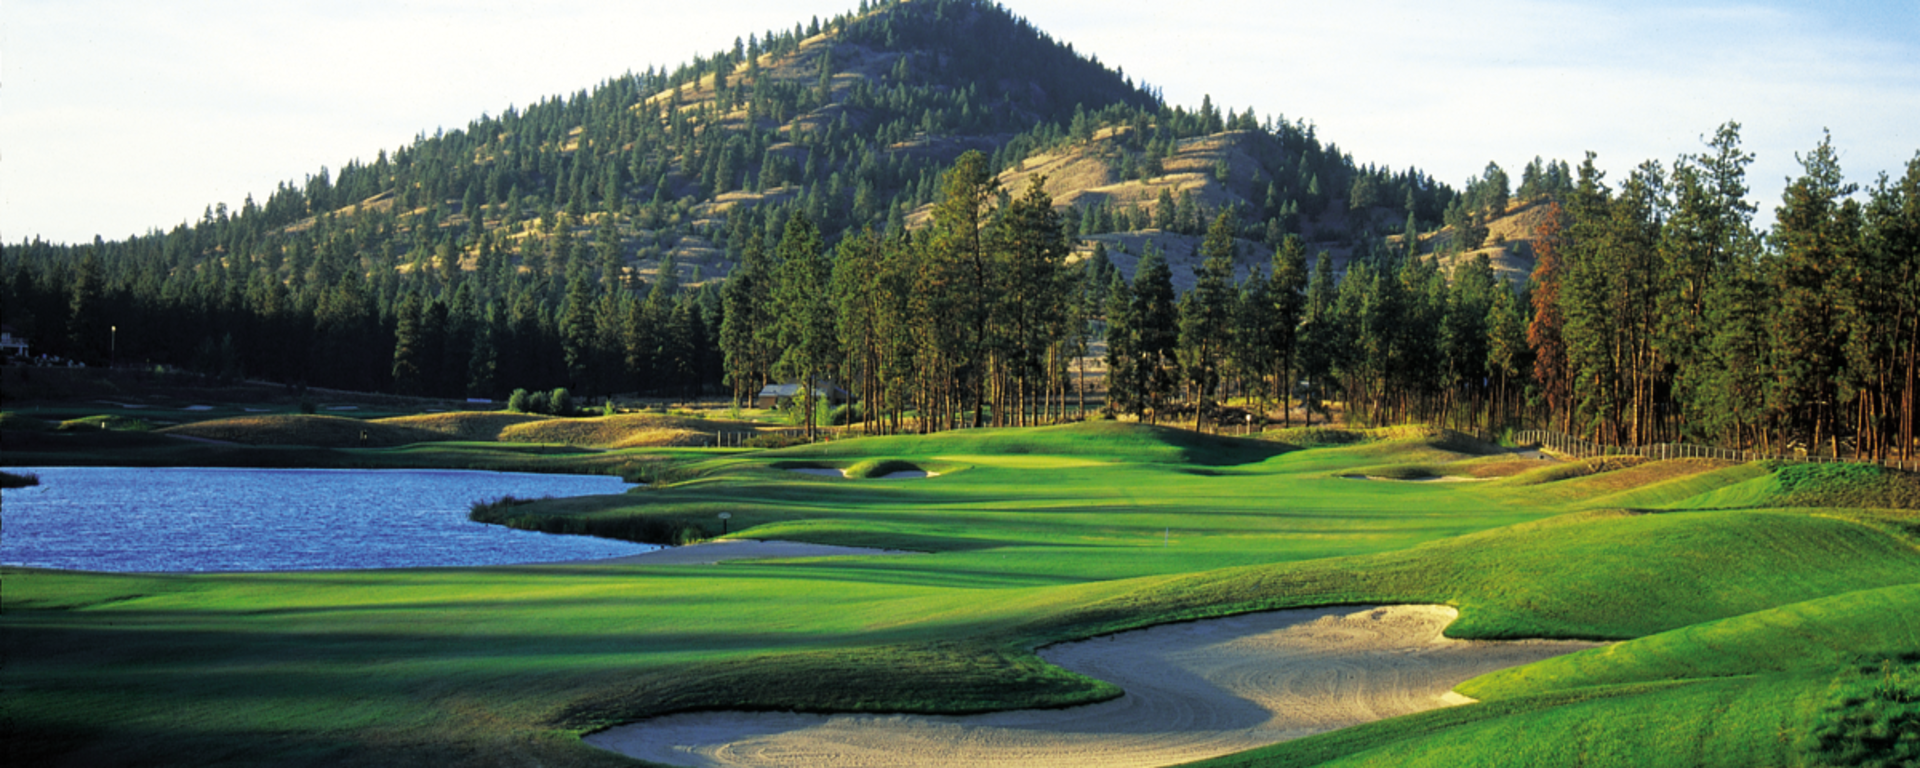 Okanagan Golf Club - The Bear Header 1